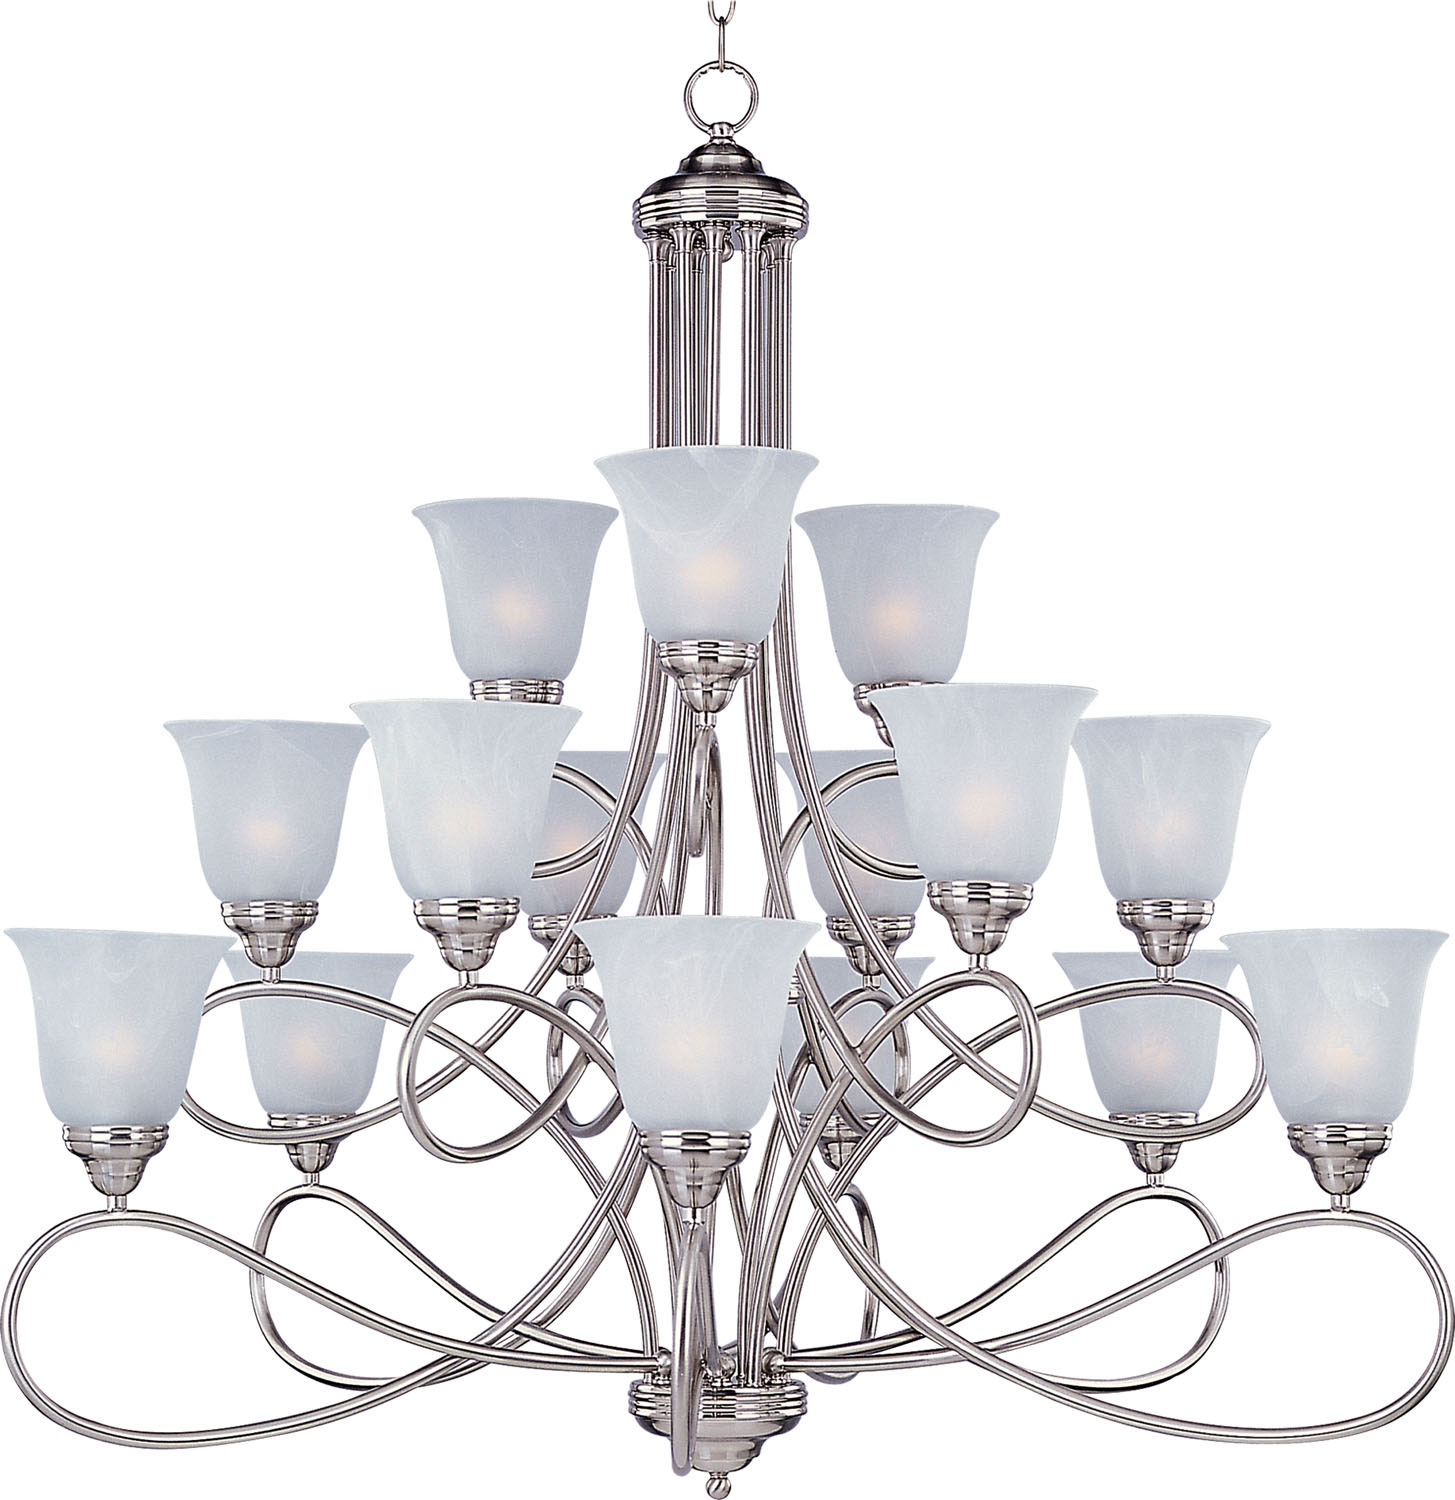 15 Light Chandelier from the Nova collection by Maxim 11045MRSN